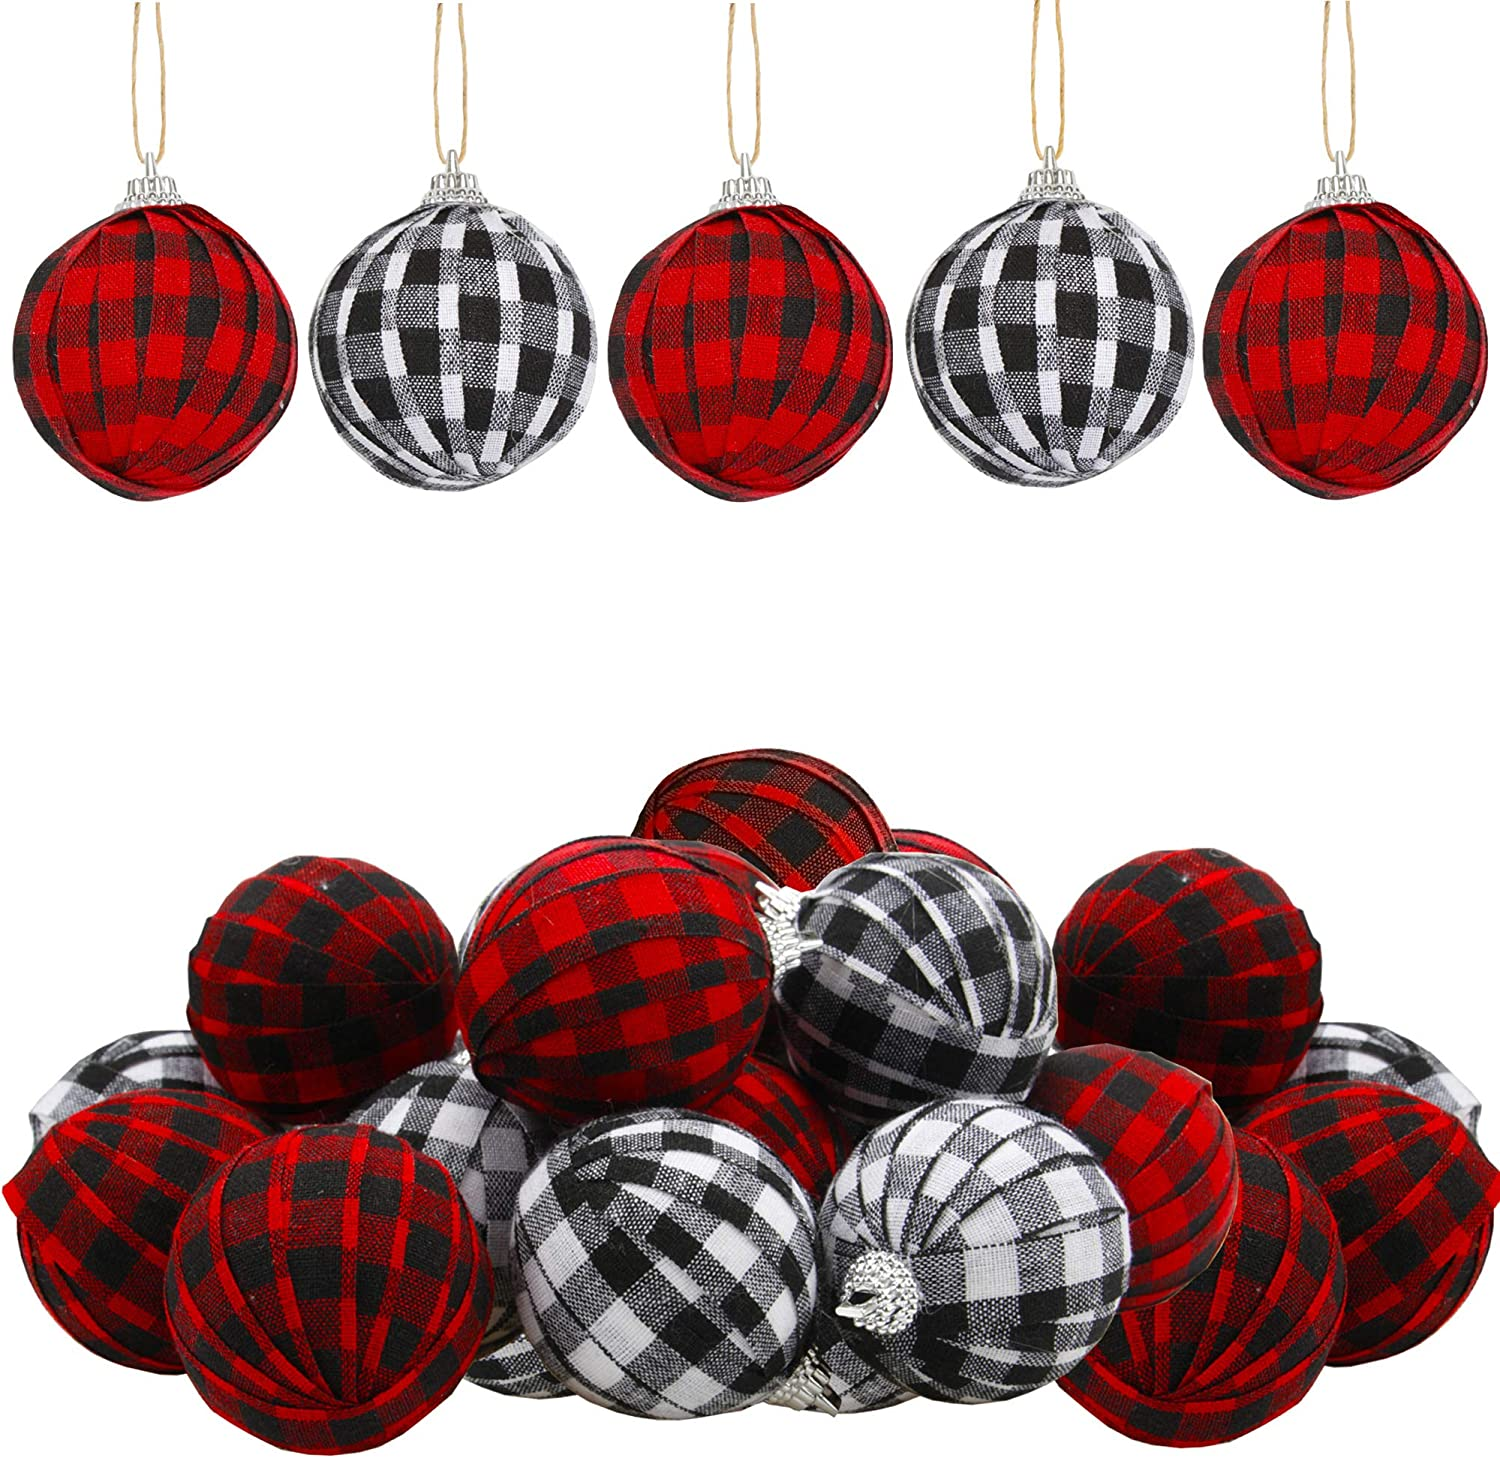 AMAZING TIME 16 Pieces Christmas Hanging Oranment Buffalo Plaid Fabric Ball for Christmas Tree Decor Party Supplies Decoration, 2 Styles